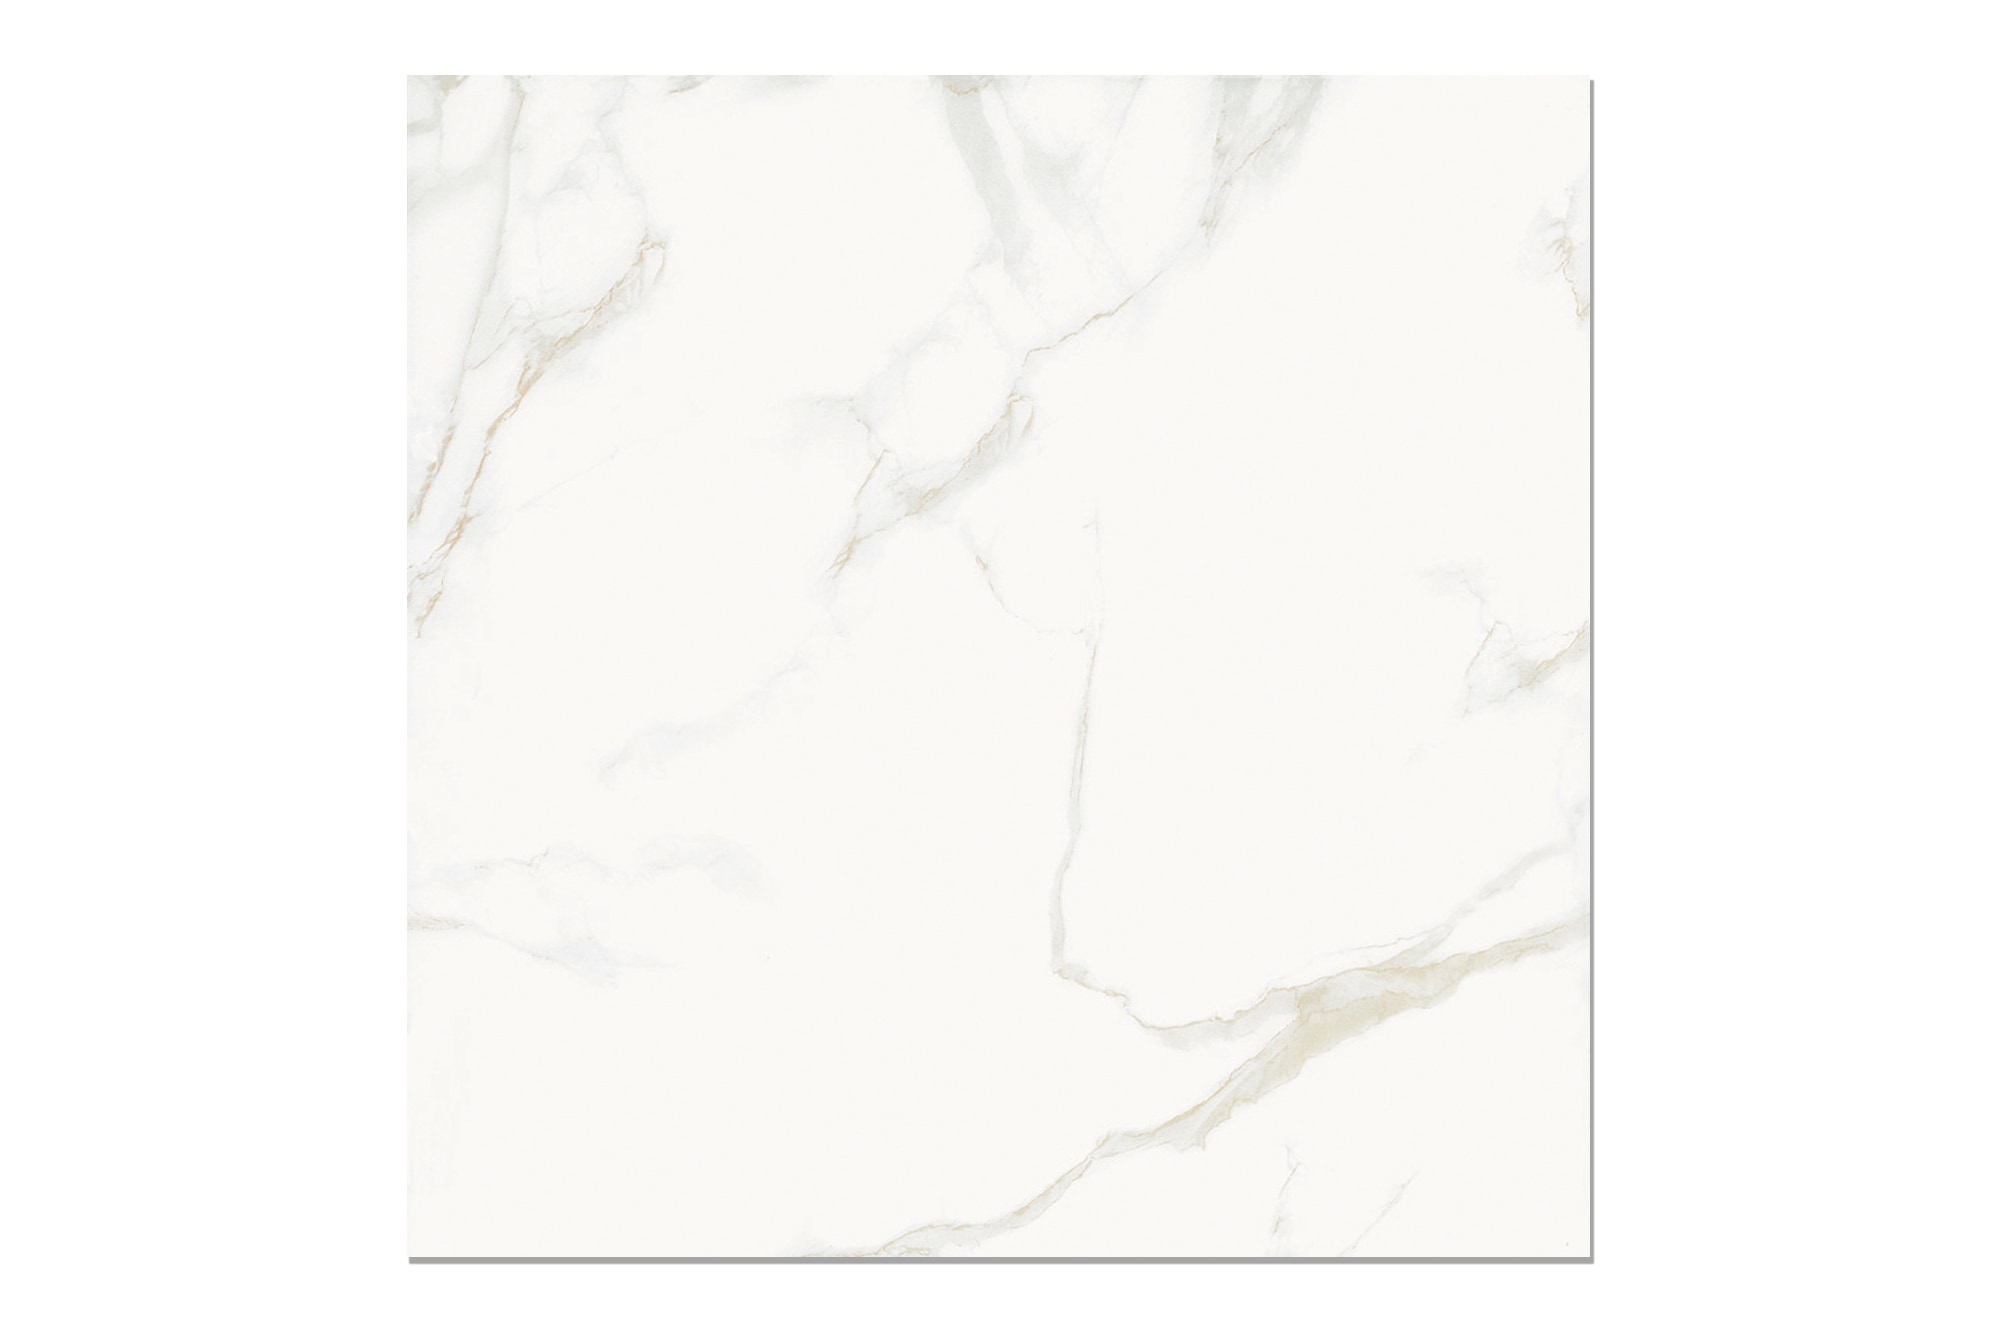 Free samples salerno micro crystal porcelain tile venus marble free samples salerno micro crystal porcelain tile venus marble series arabascato polished 24x24 dailygadgetfo Image collections